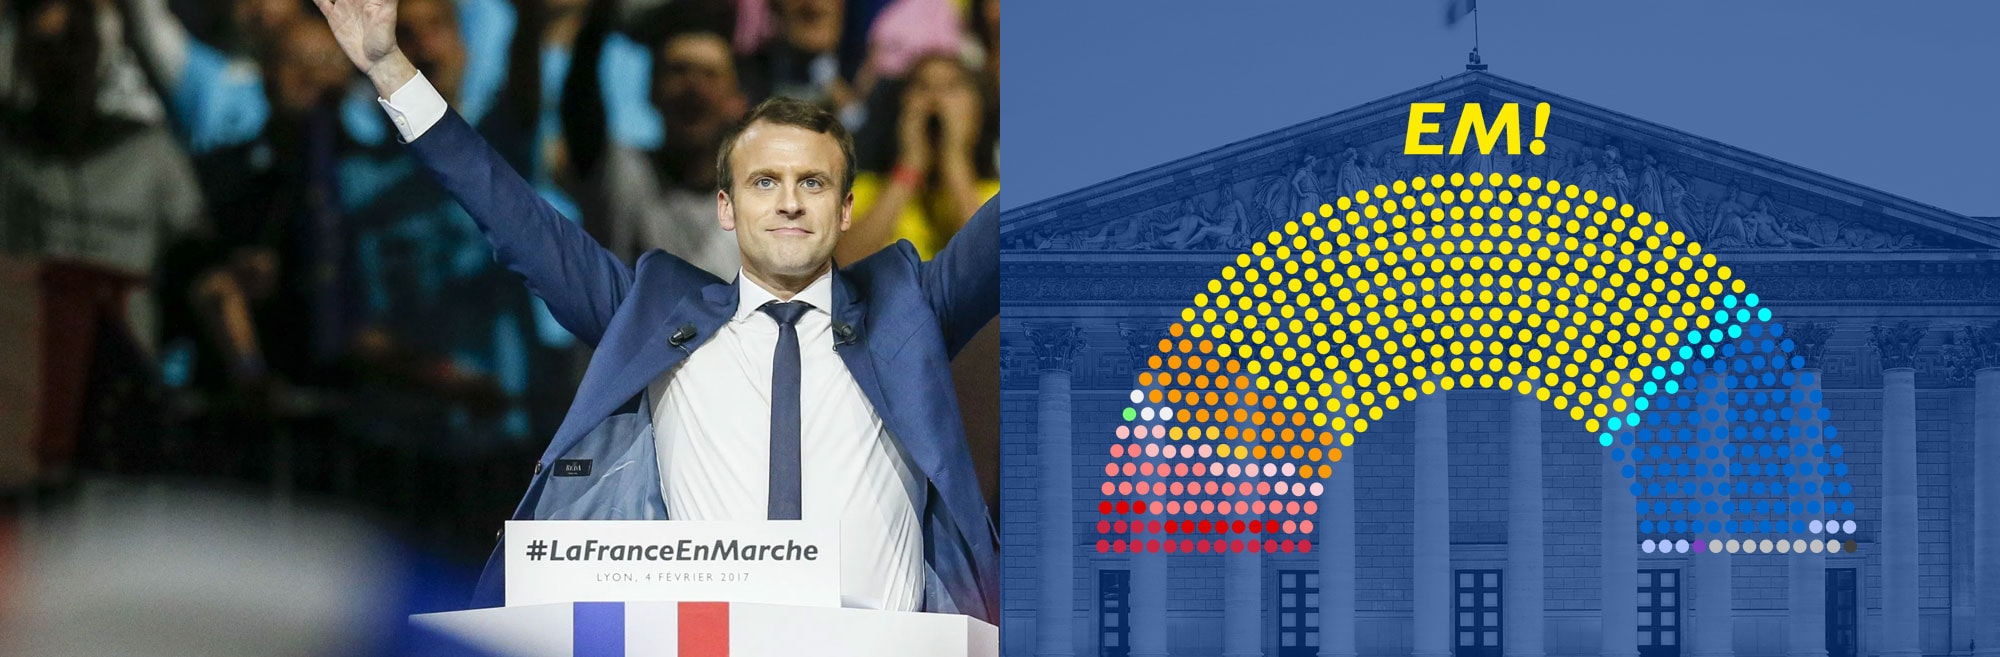 We helped French President Emmanuel Macron's En Marche ! launch over 400 candidate sites that helped the new party win over 60% of the French National Assembly.